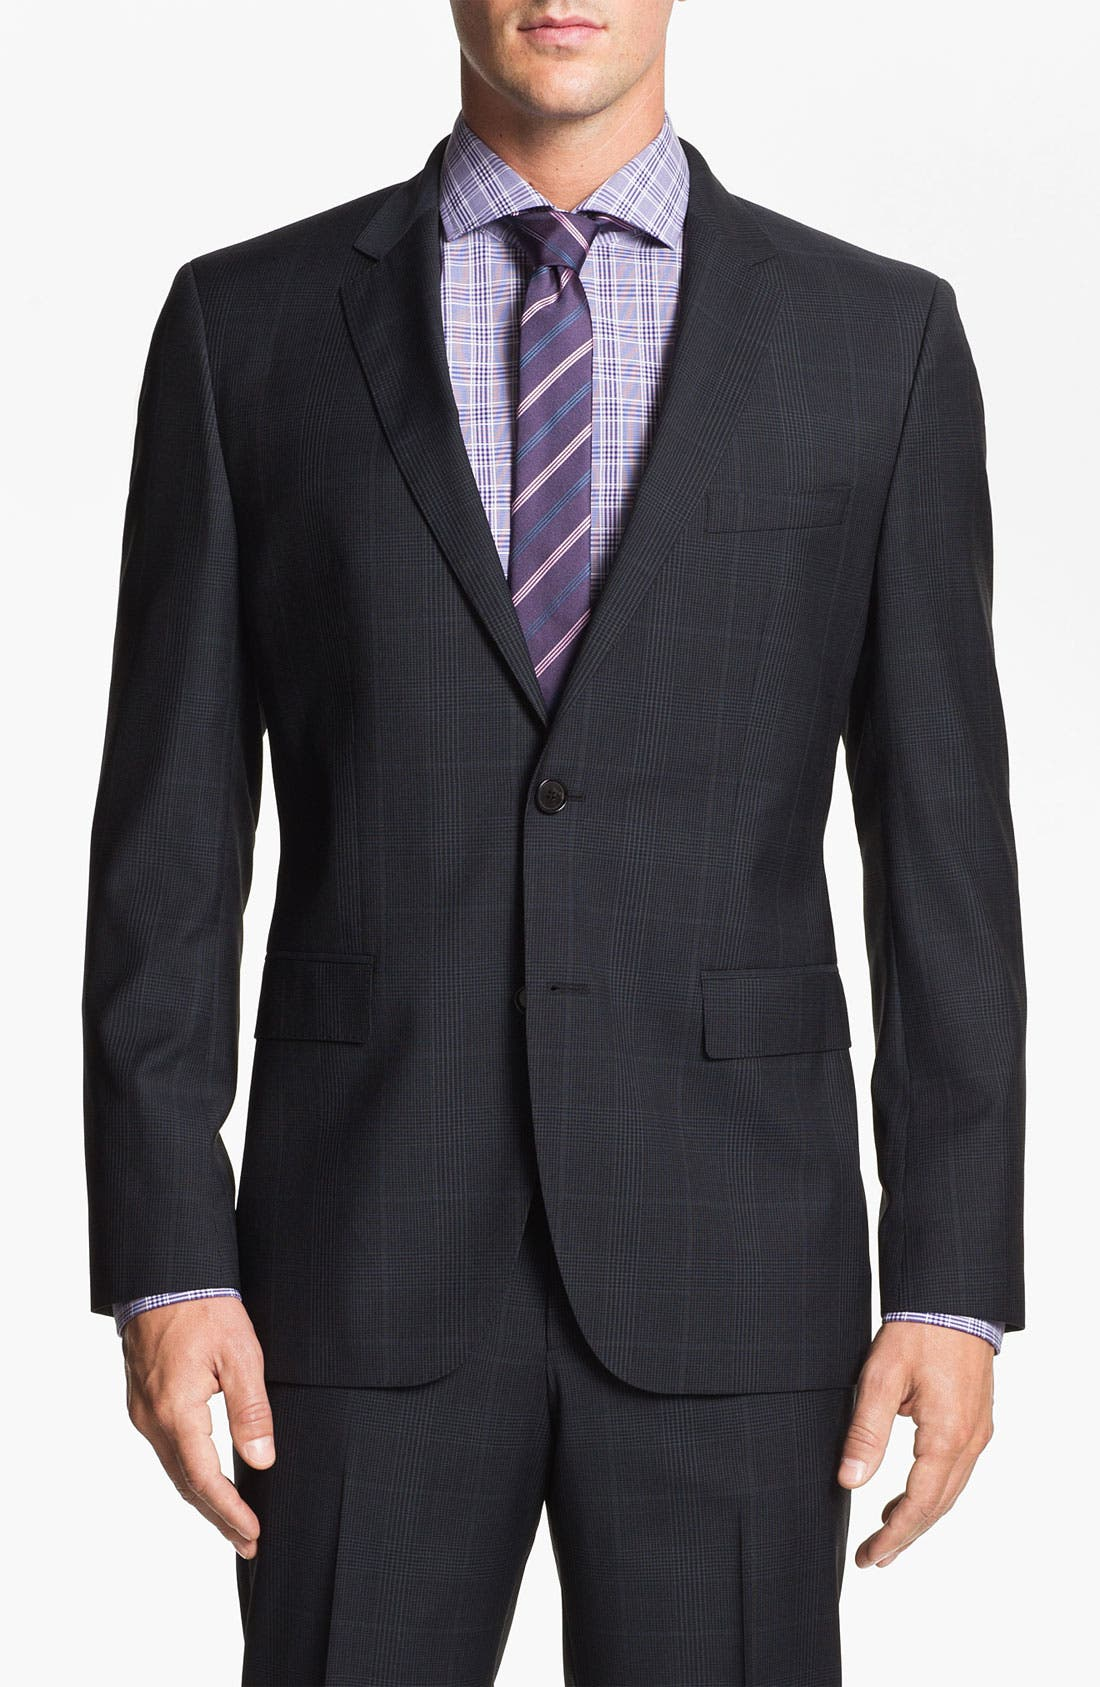 Alternate Image 1 Selected - BOSS Black 'Jam/Sharp' Trim Fit Plaid Suit